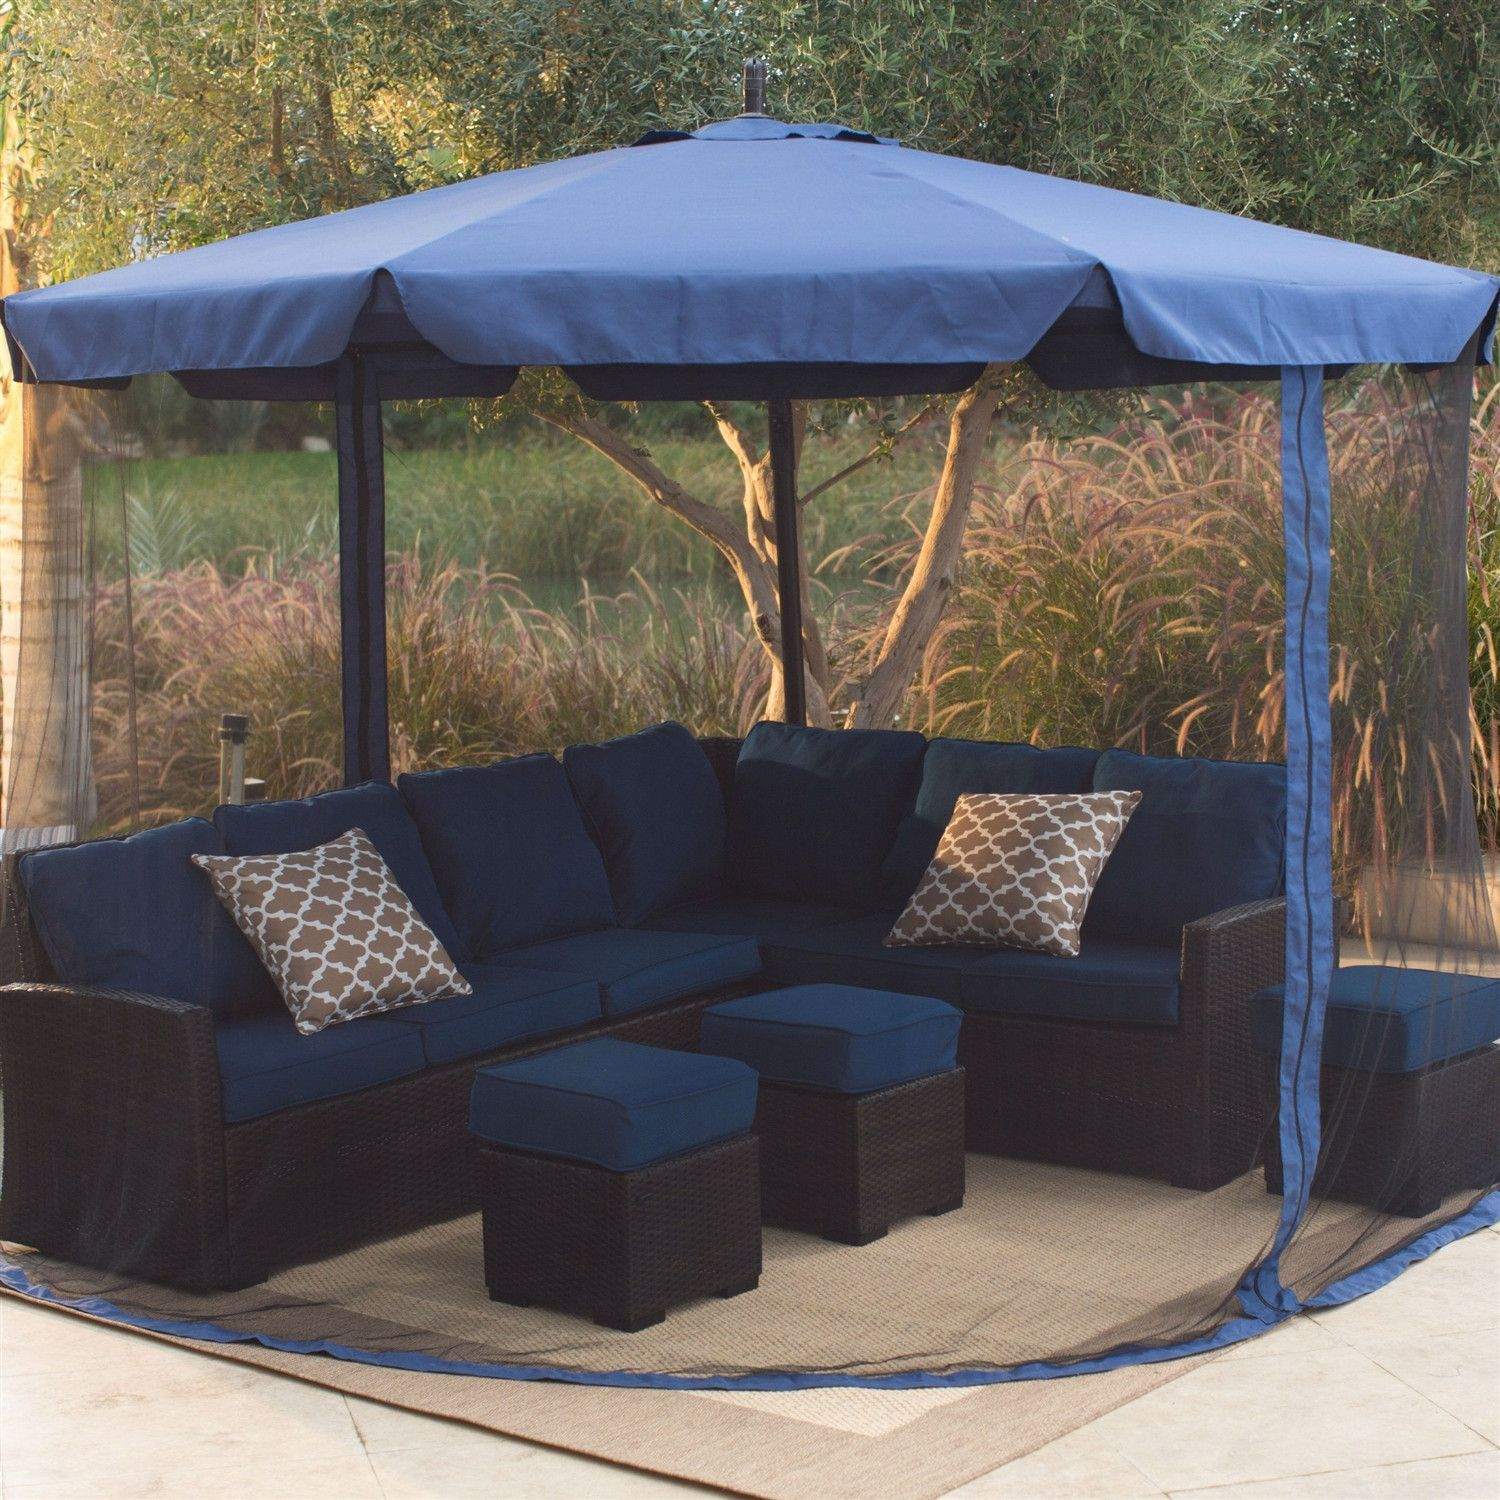 11 Ft Cantilever Crank Lift Patio Umbrella in Blue with Removable